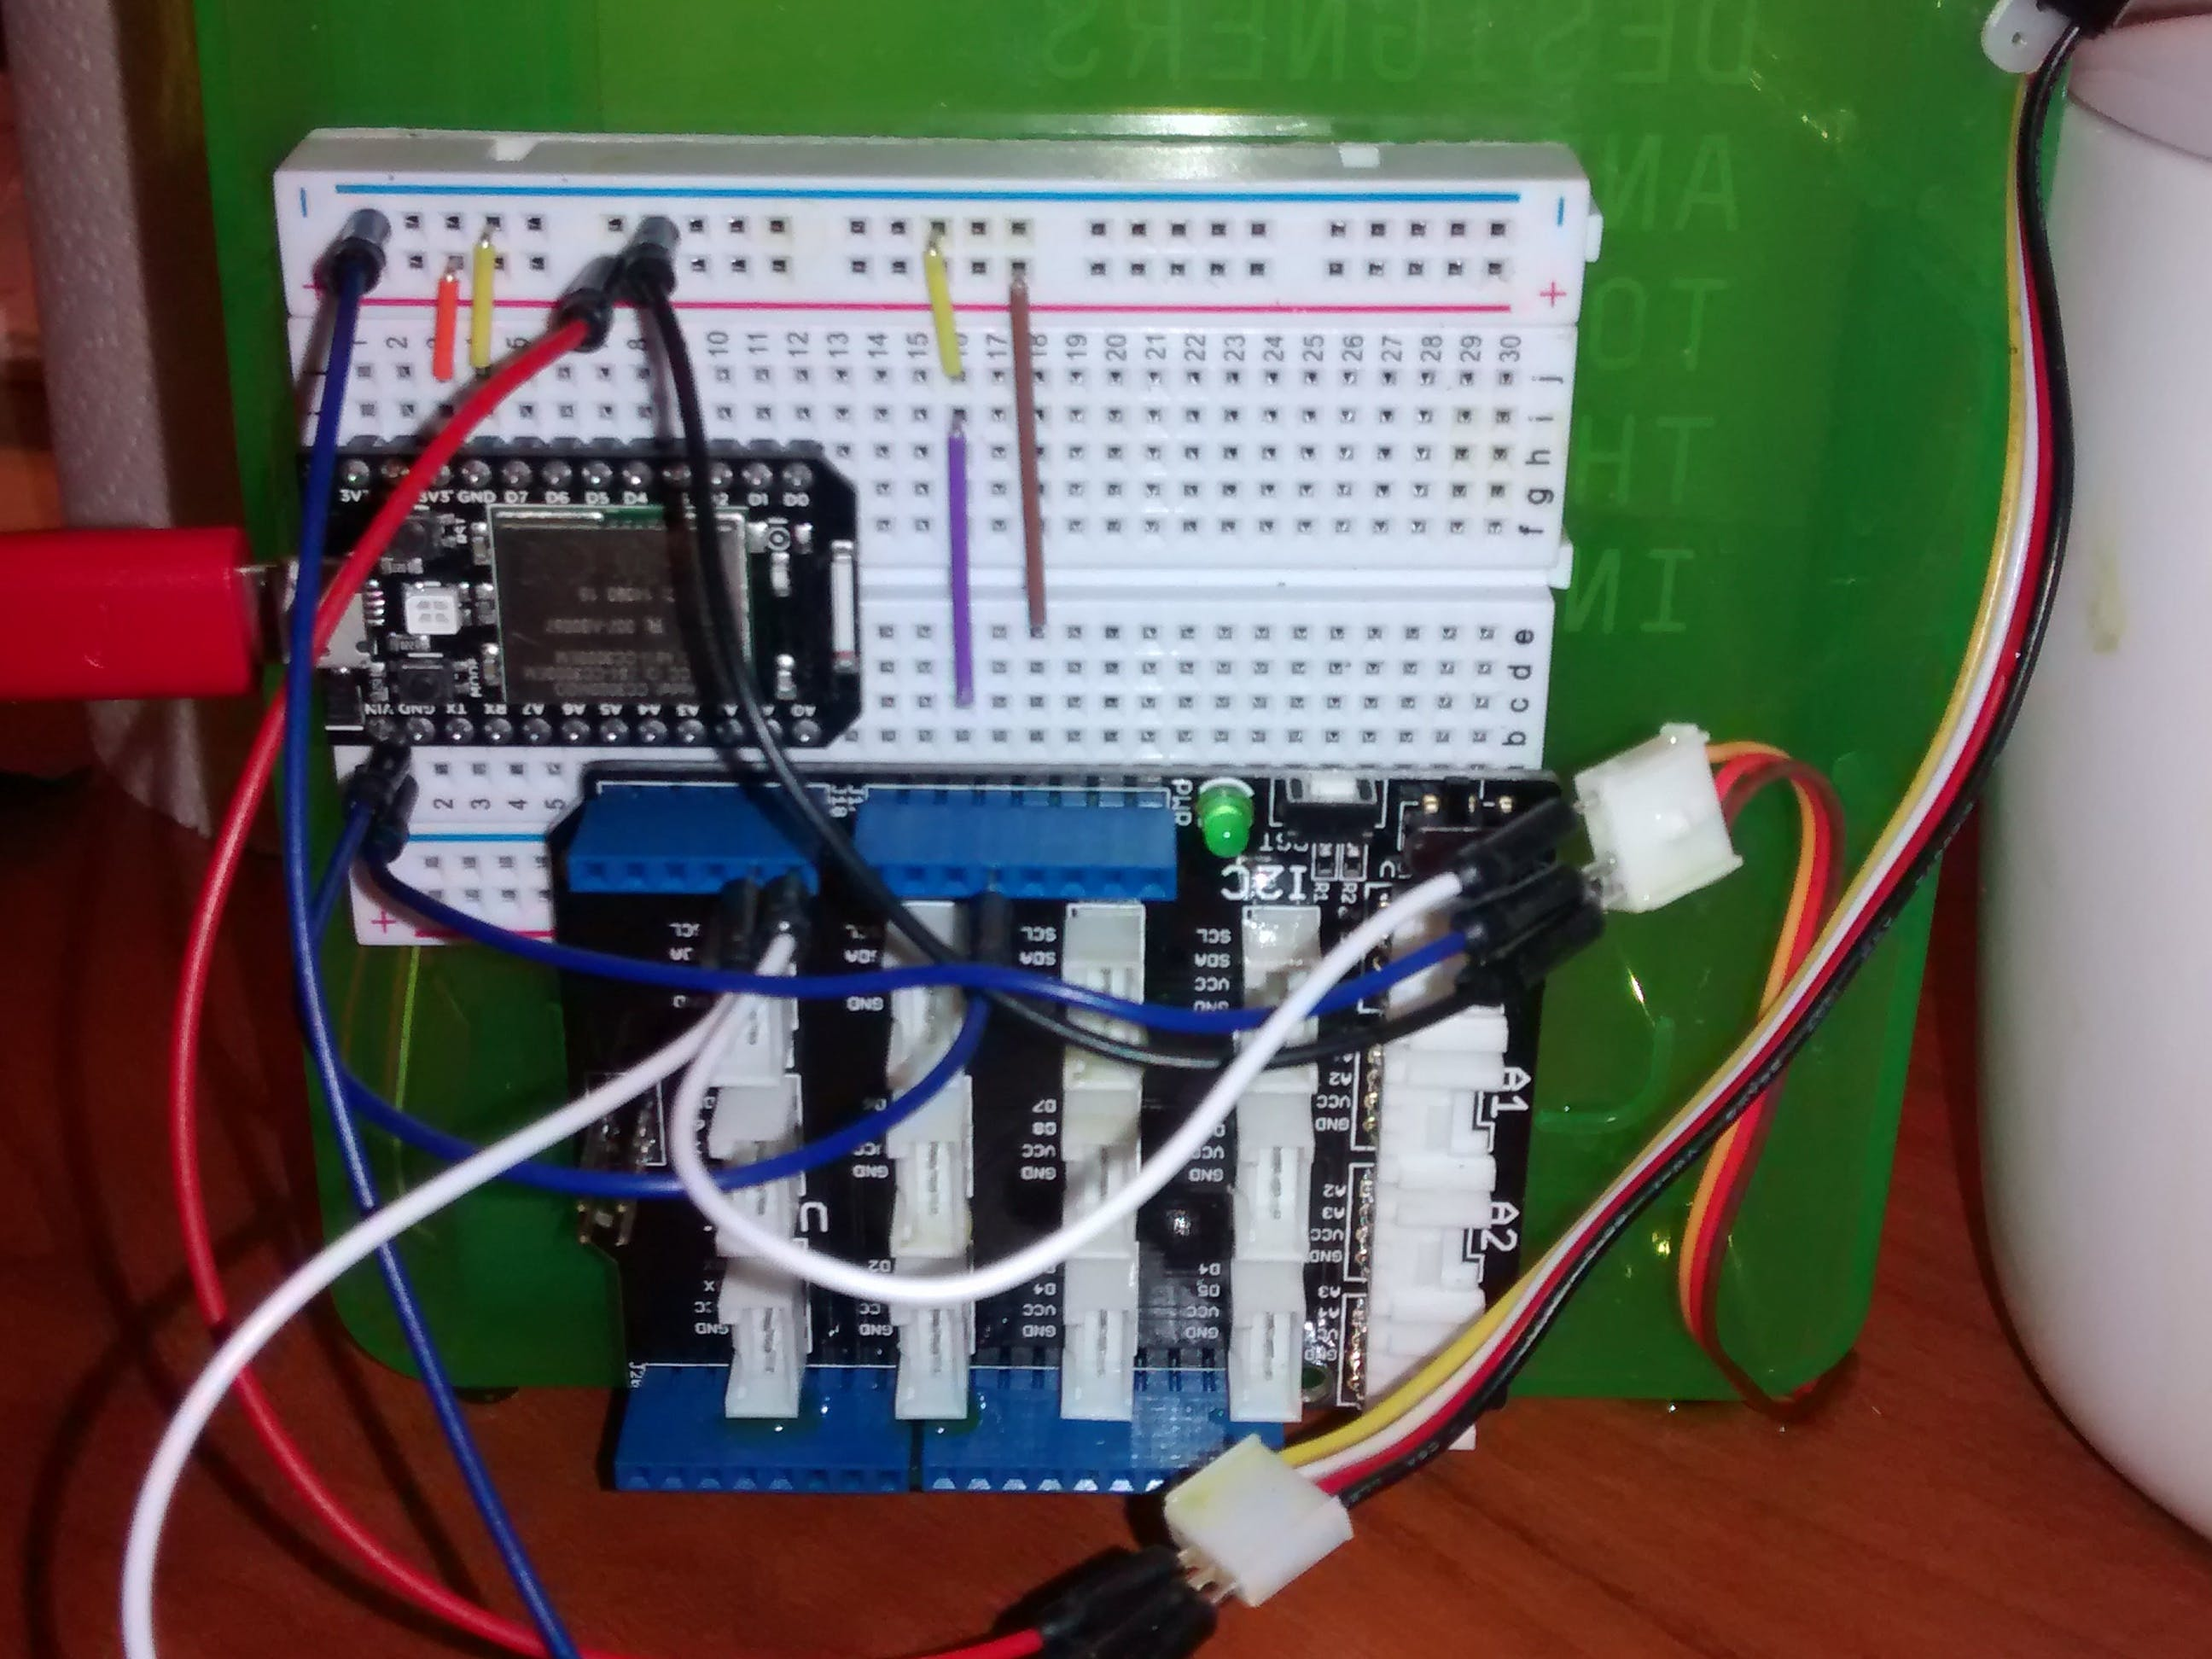 Spark Core with Grove Shield